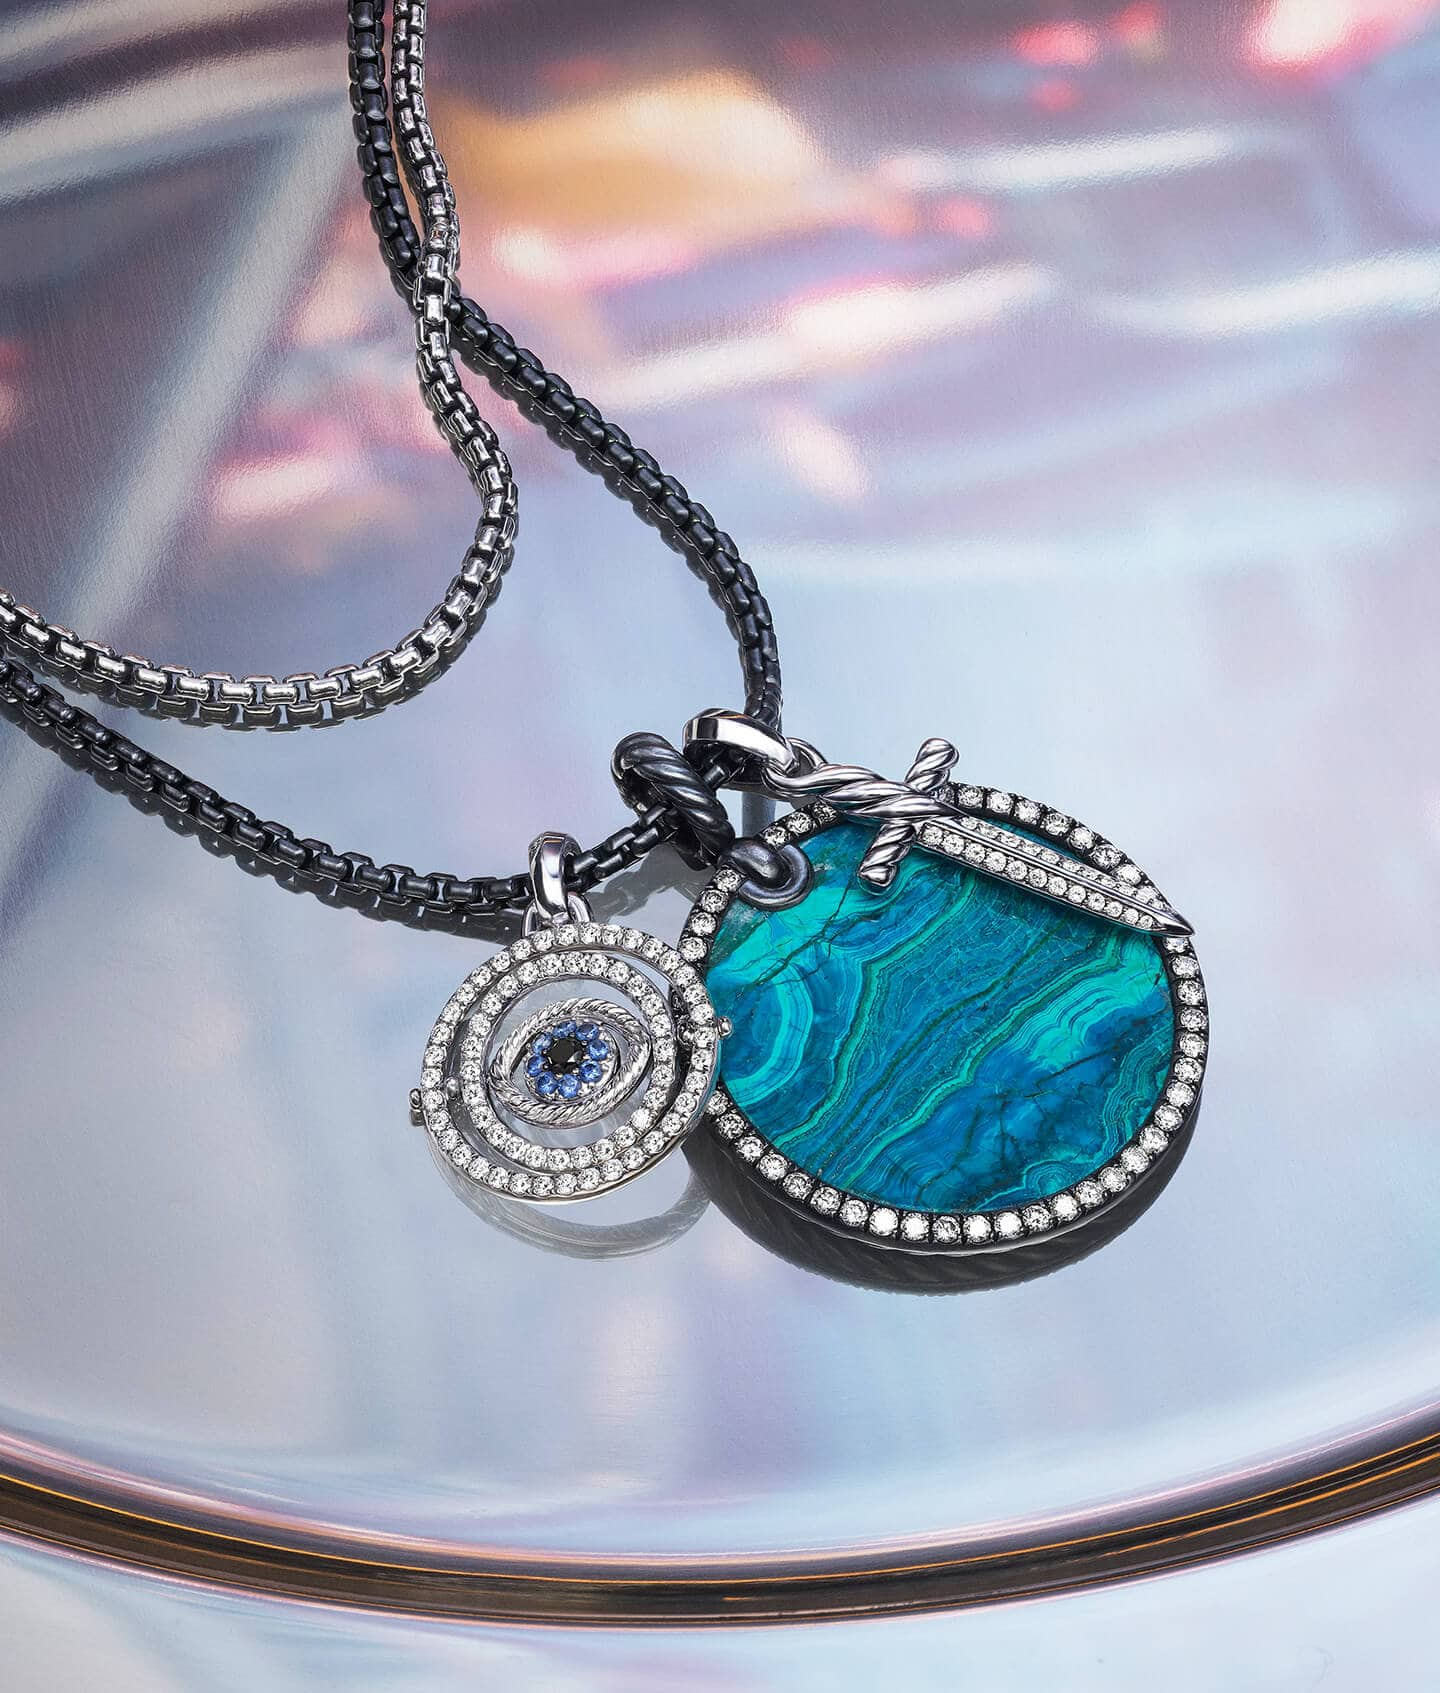 Two David Yurman chains strung with three amulets (also shown right) on a colorful photo of NYC. The center amulet features a circular piece of chrysocolla surrounded by white diamonds. The other two amulets depict an evil eye and a dagger with white diamonds and blue sapphires. The jewelry is crafted from sterling silver, darkened sterling silver or 18K white gold.